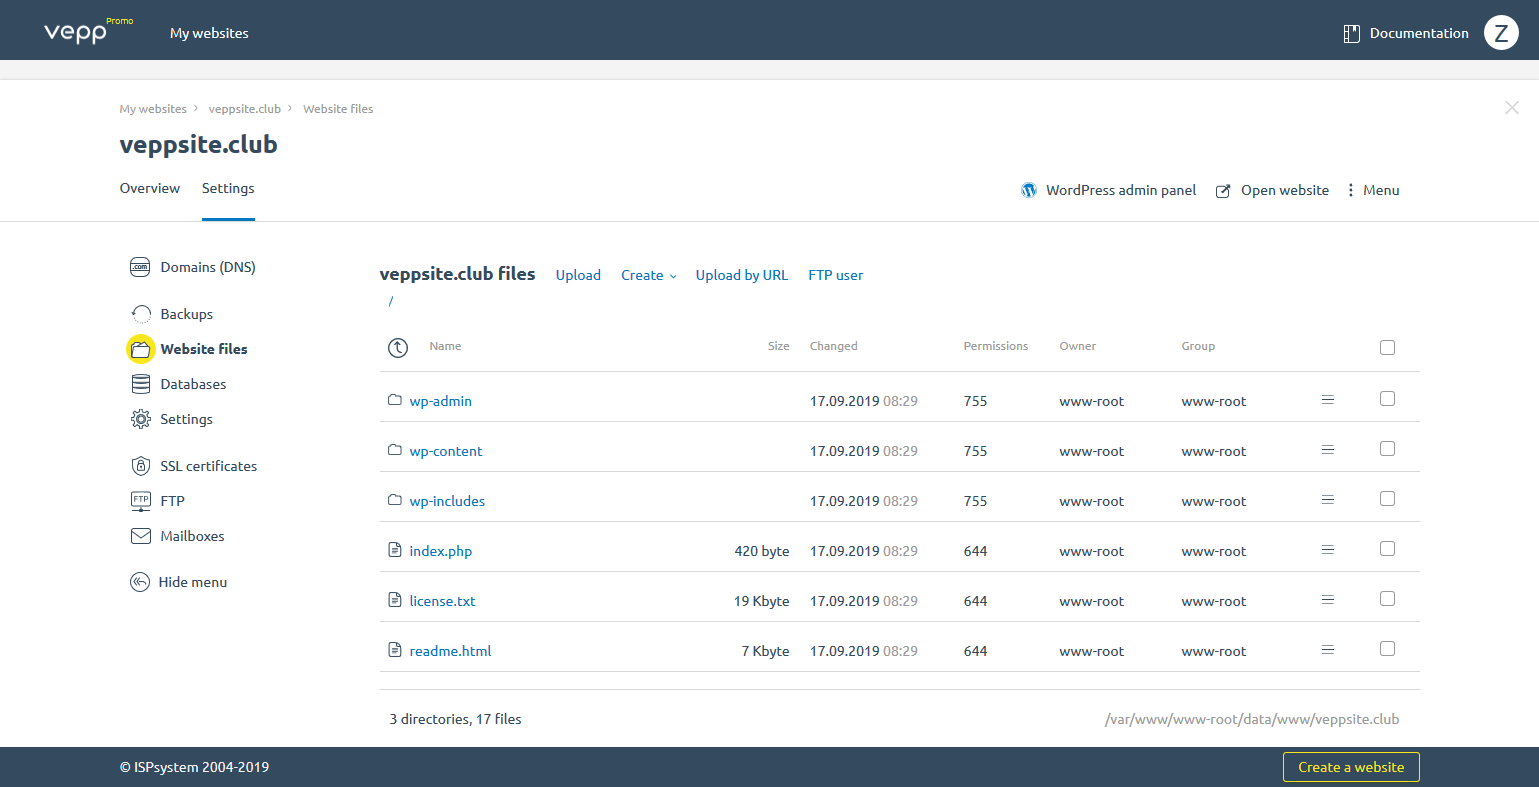 The Vepp file manager